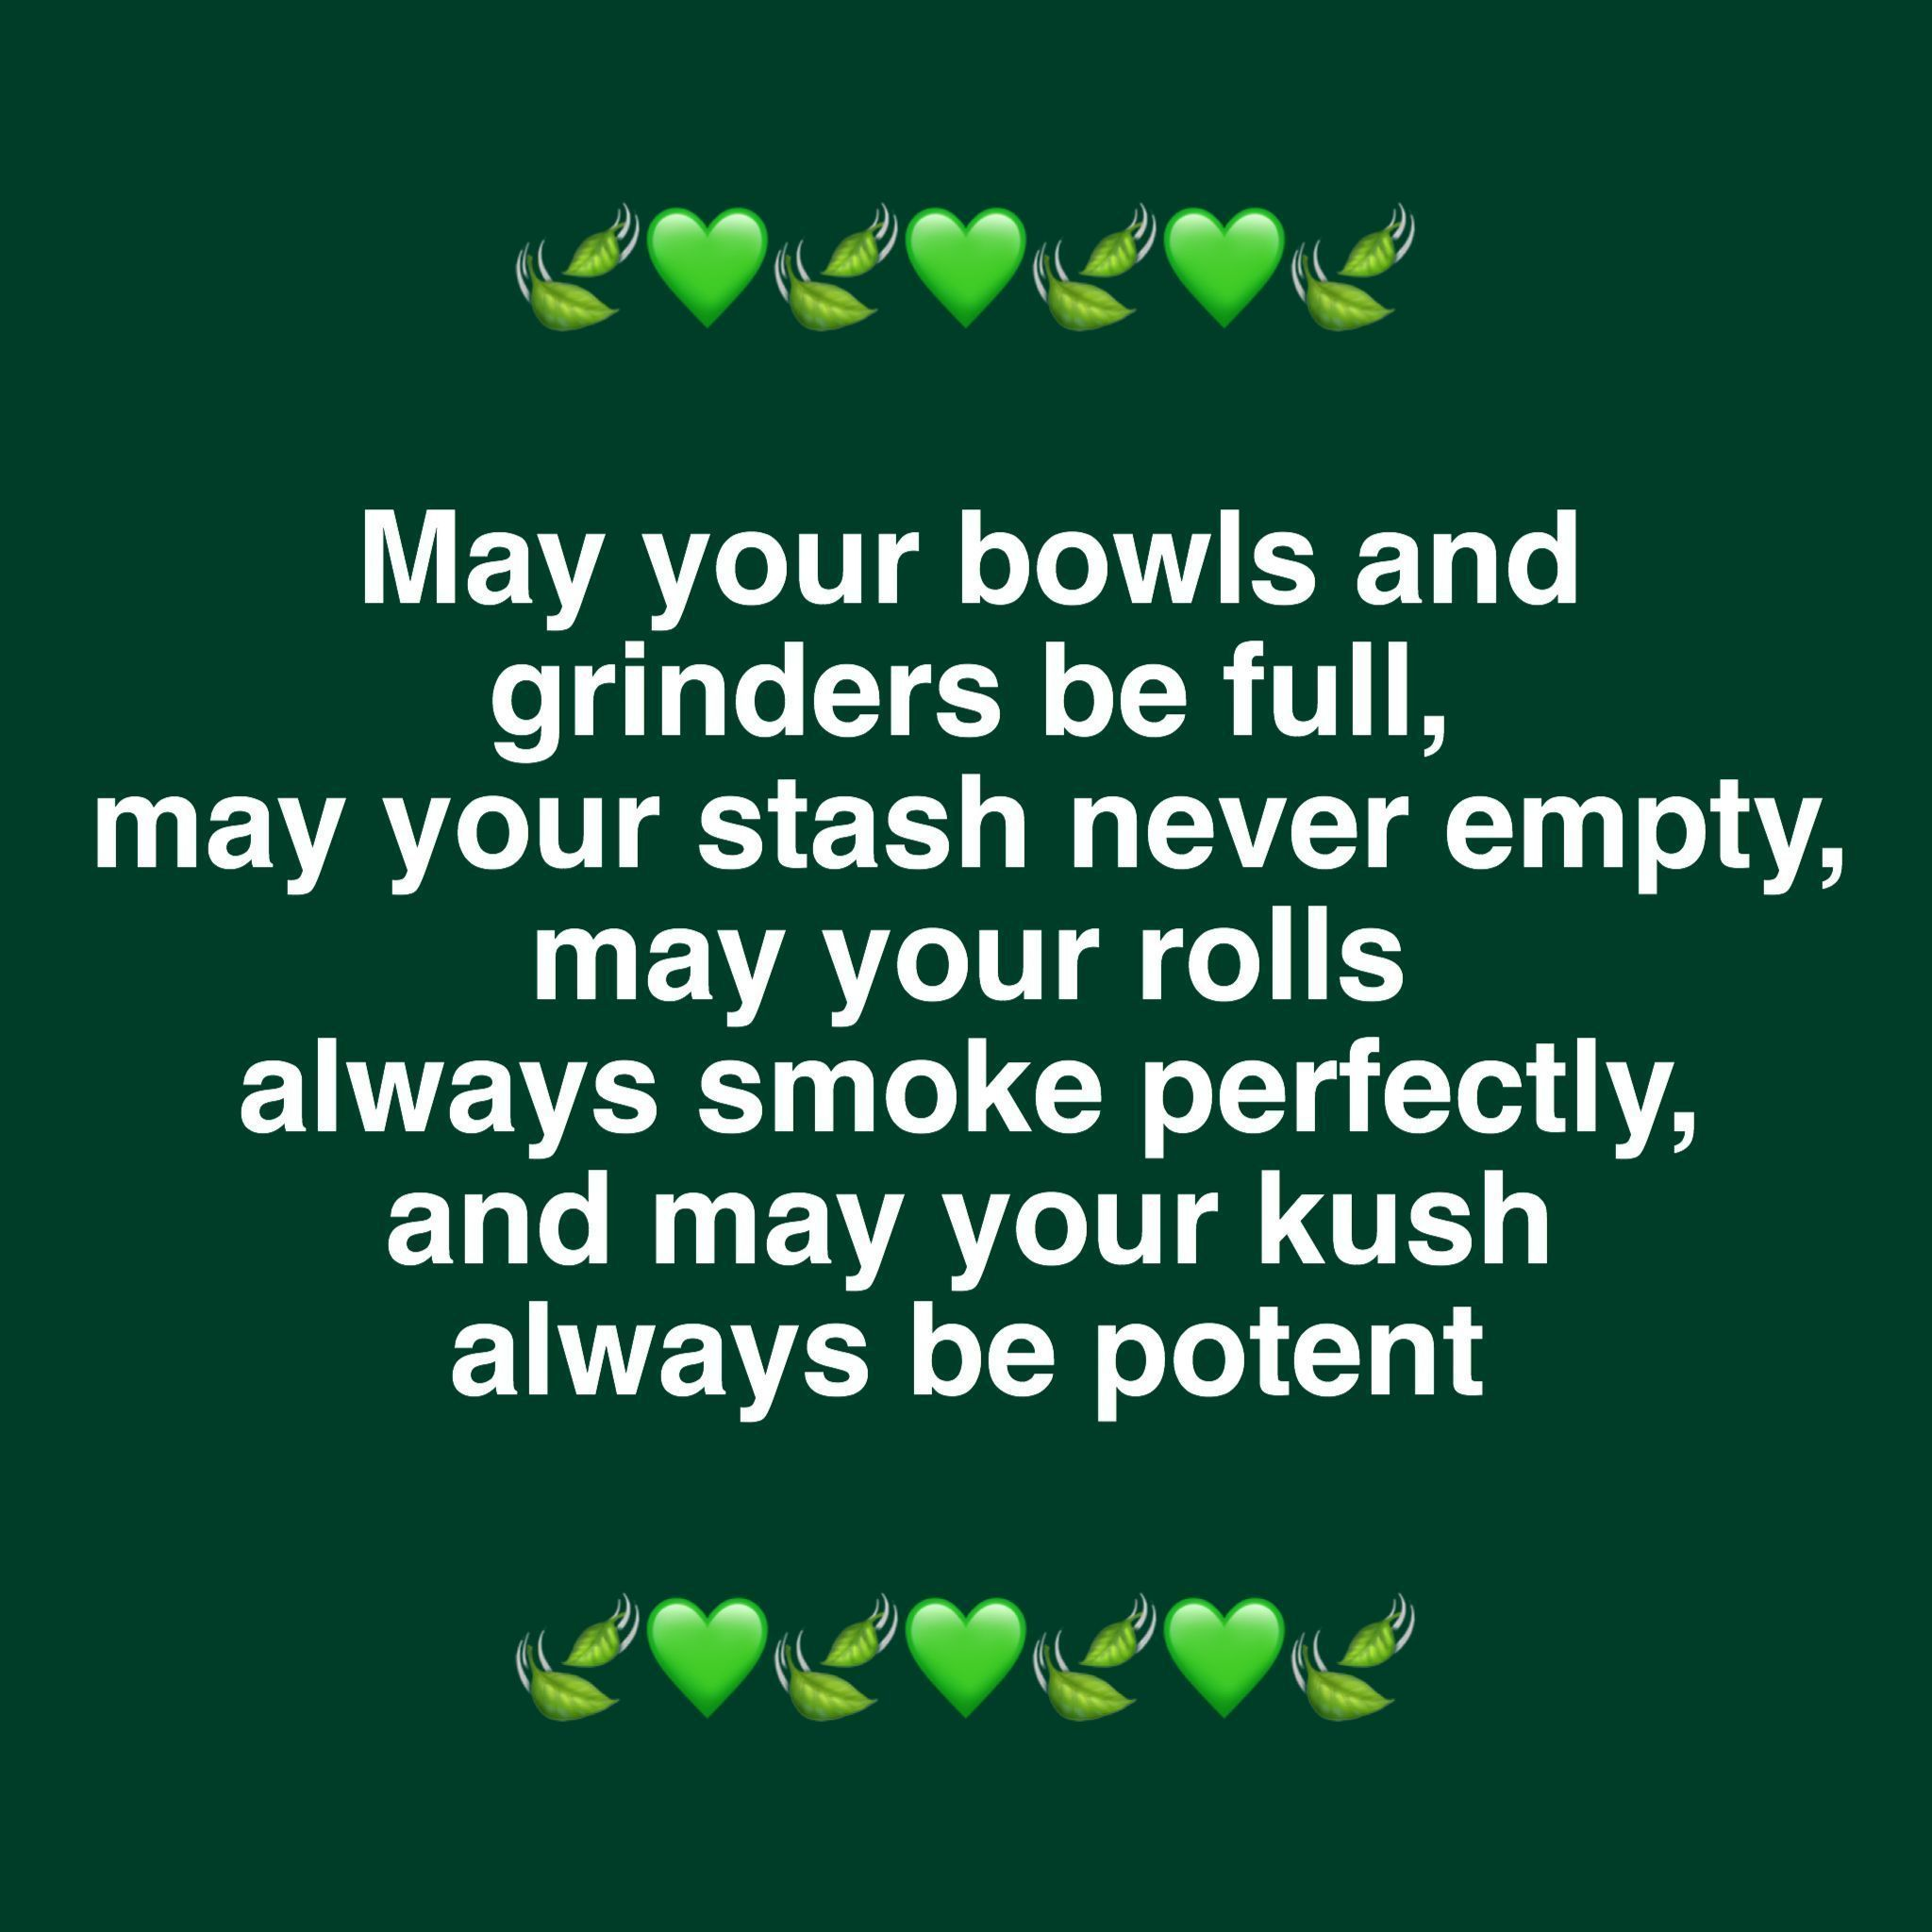 Spell for Weed Smokers #greenwitchcraft #greenwitchcraft Spell for Weed Smokers #greenwitchcraft #greenwitchcraft Spell for Weed Smokers #greenwitchcraft #greenwitchcraft Spell for Weed Smokers #greenwitchcraft #greenwitchcraft Spell for Weed Smokers #greenwitchcraft #greenwitchcraft Spell for Weed Smokers #greenwitchcraft #greenwitchcraft Spell for Weed Smokers #greenwitchcraft #greenwitchcraft Spell for Weed Smokers #greenwitchcraft #greenwitchcraft